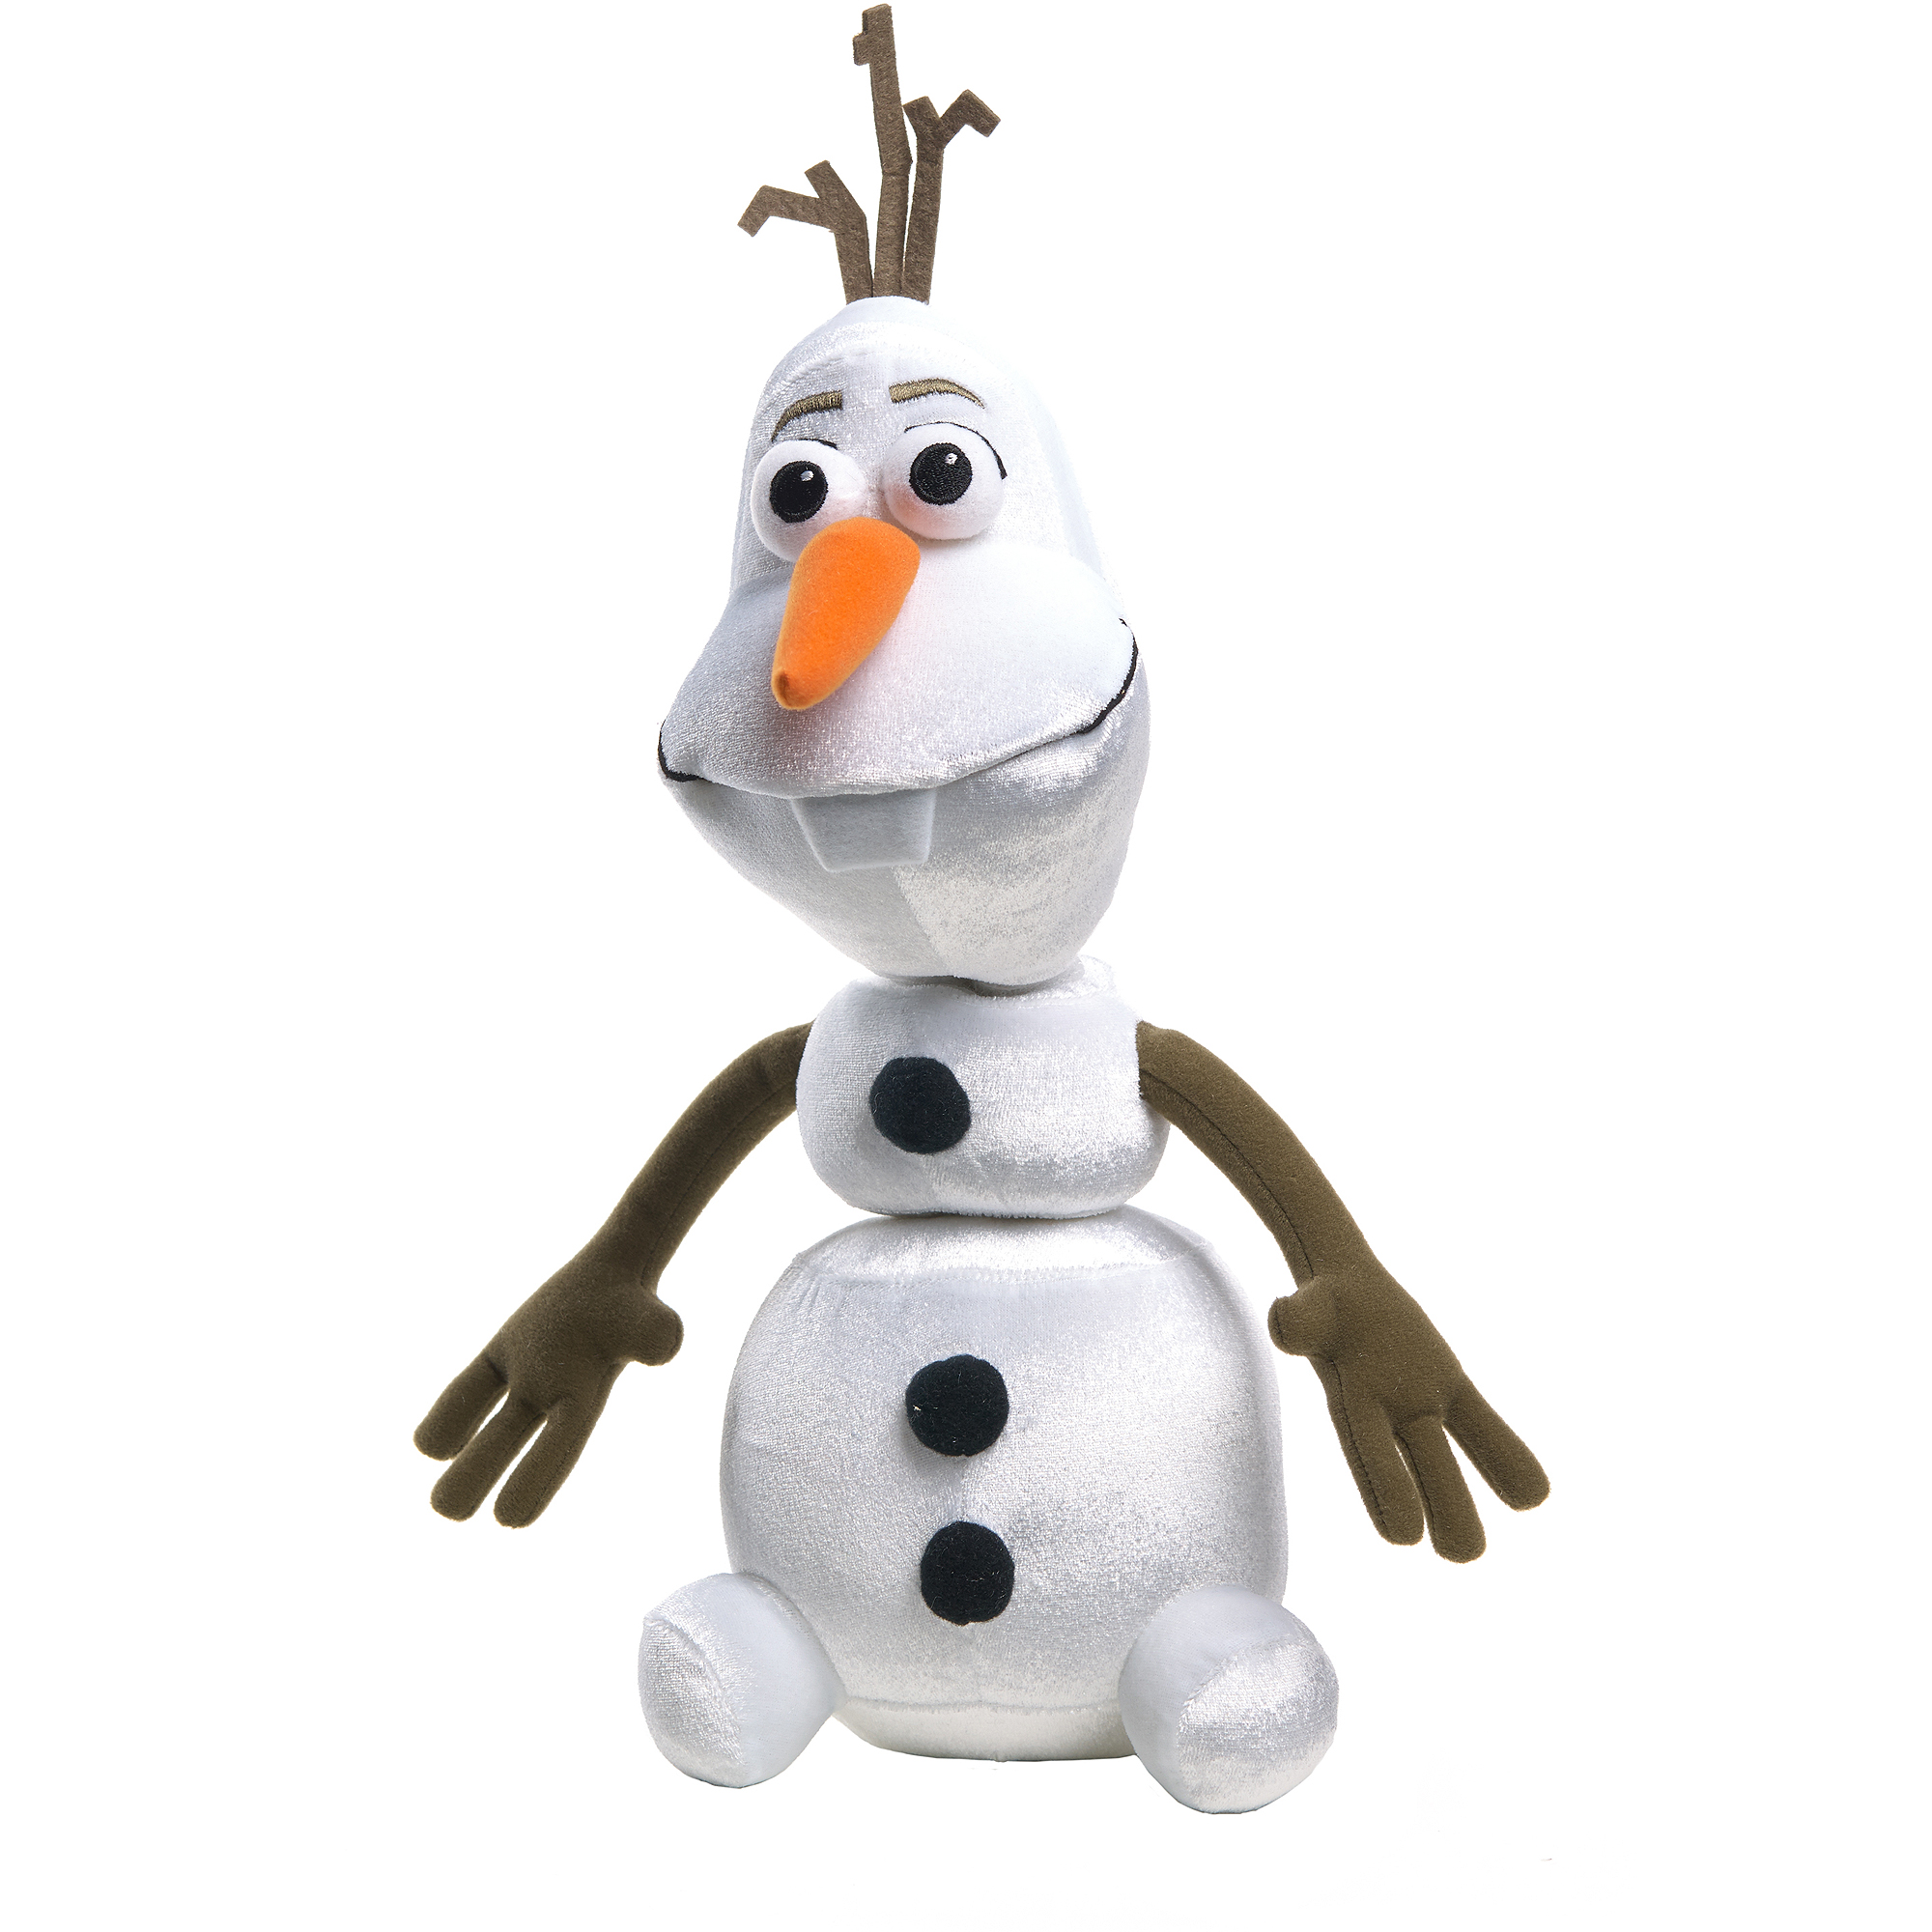 Disney Frozen Pull-a-Part Talking Olaf Plush